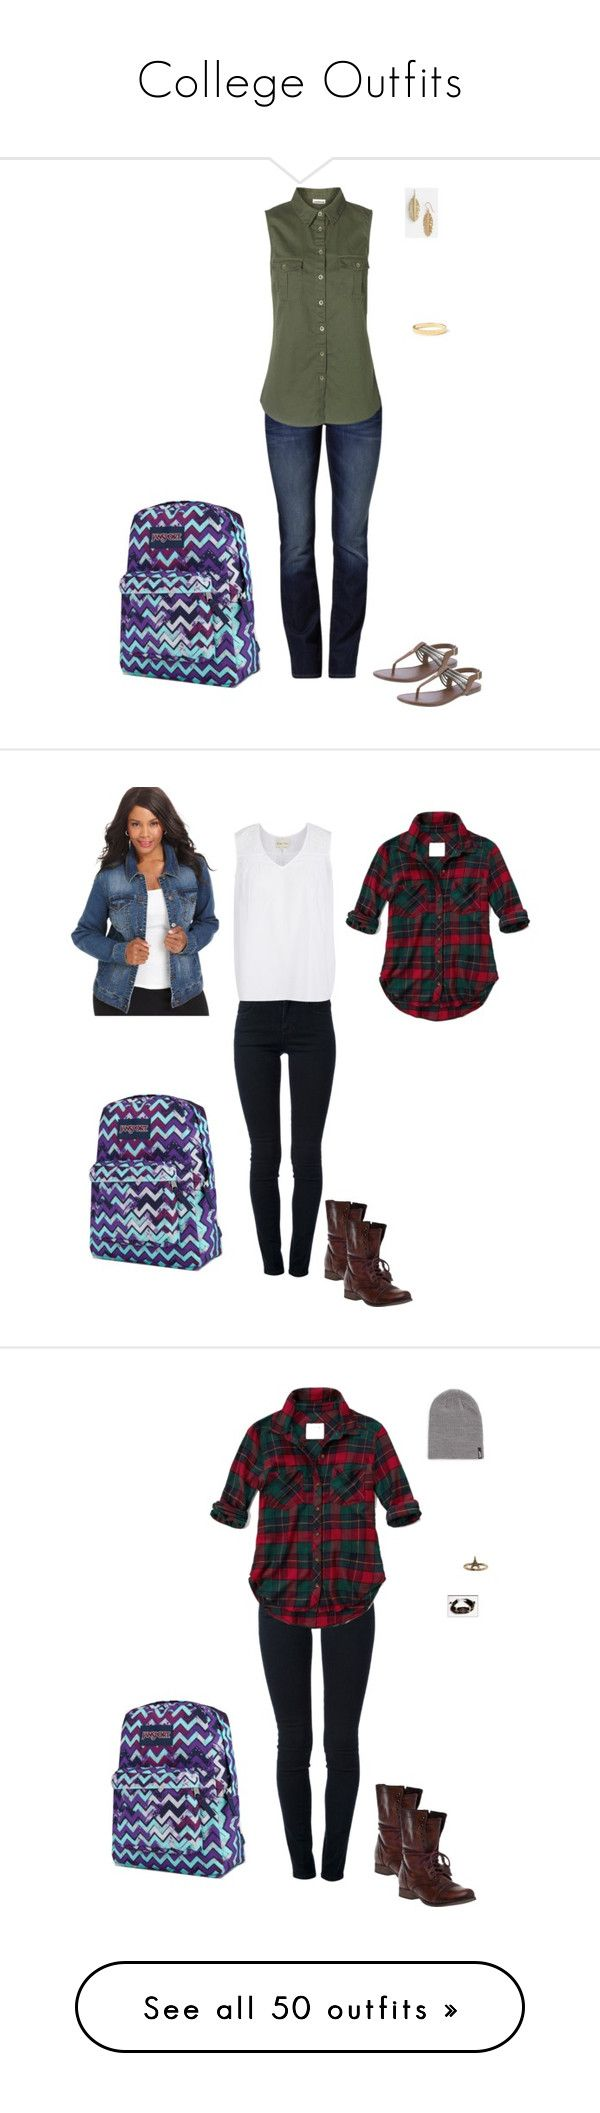 """""""College Outfits"""" by maddieshu on Polyvore featuring Mavi, Vero Moda, Melinda Maria, Kate Spade, JanSport, STELLA McCARTNEY, Abercrombie & Fitch, Style & Co., Steve Madden and Vans"""